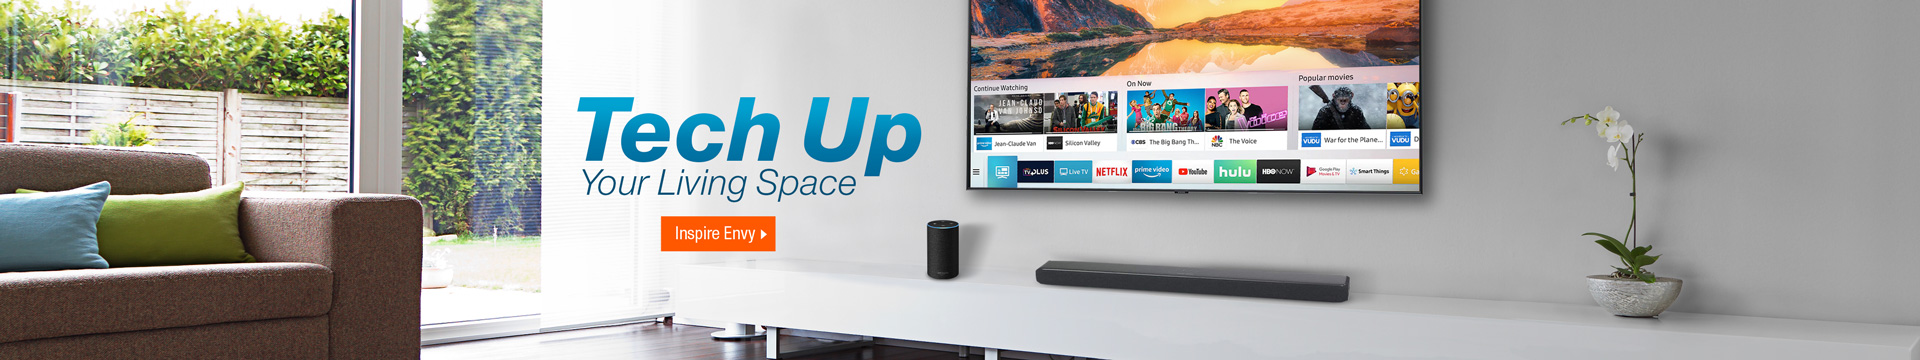 Tech Up Your Living Space